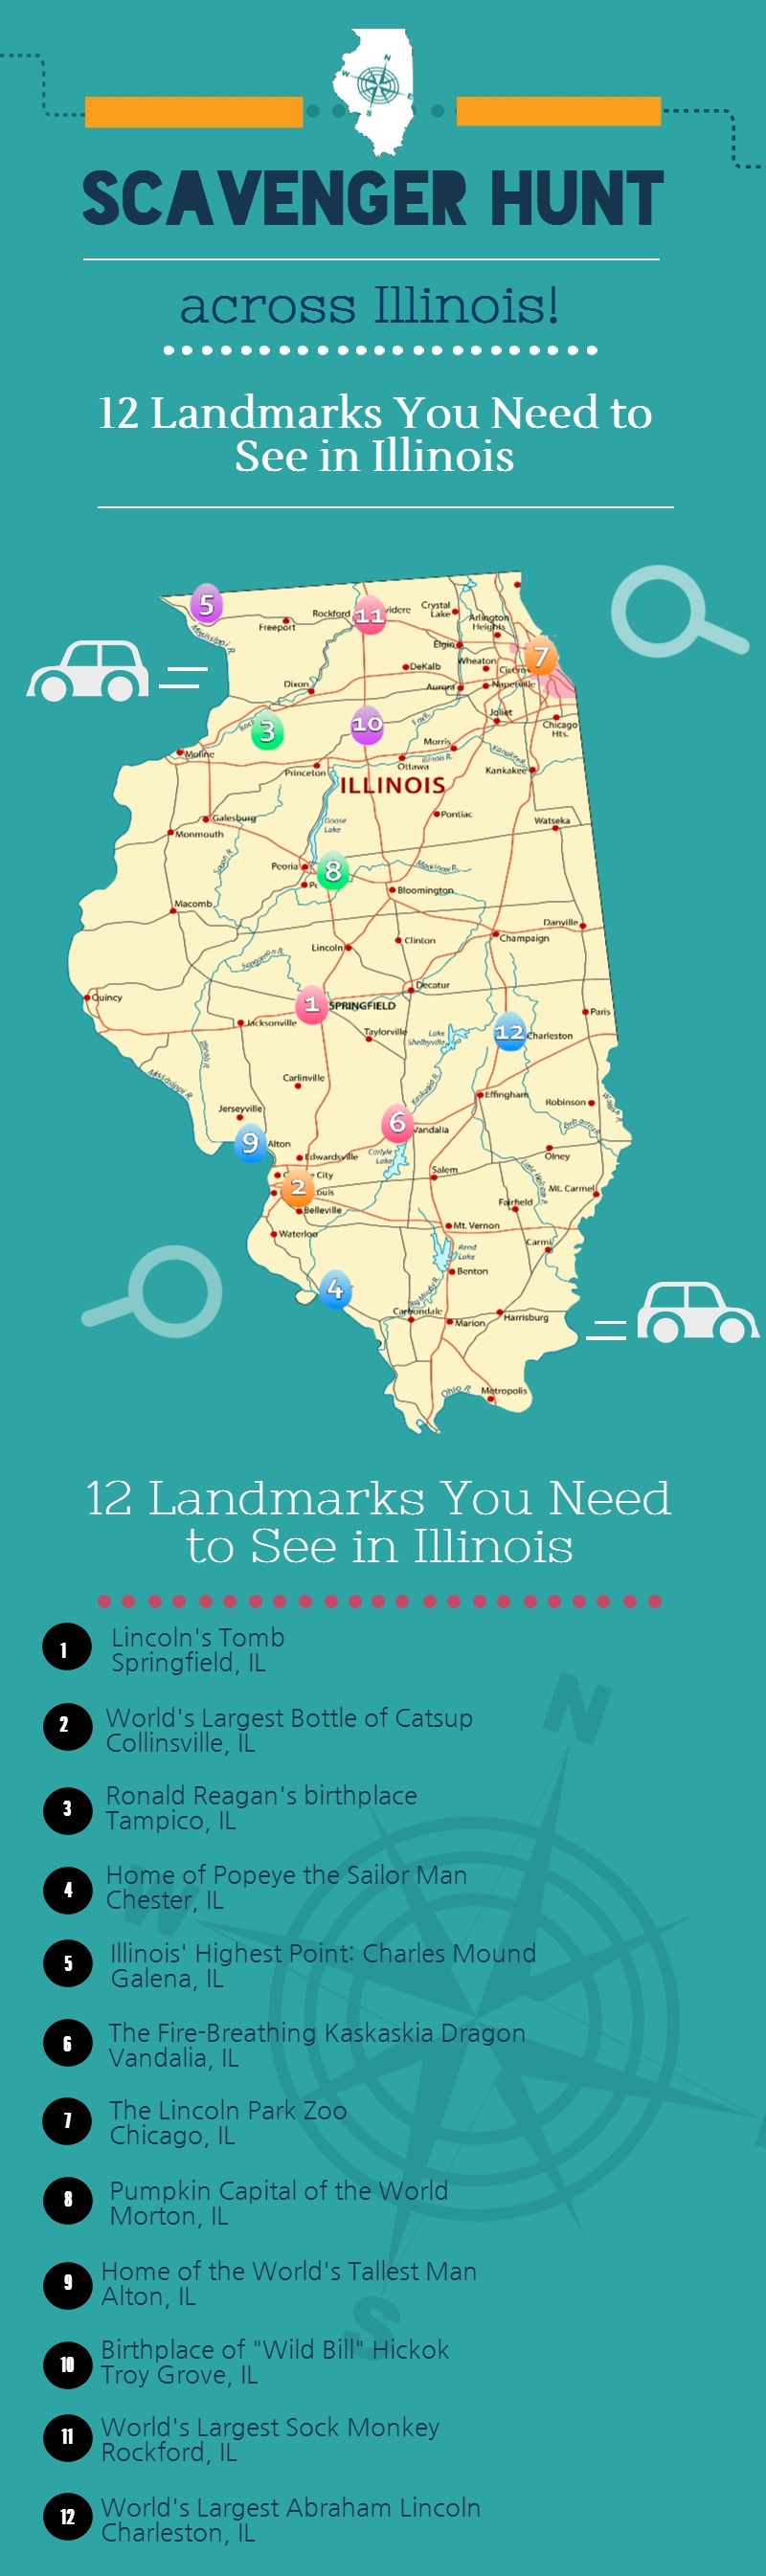 12 Tourist Attractions in Illinois | HuffPost